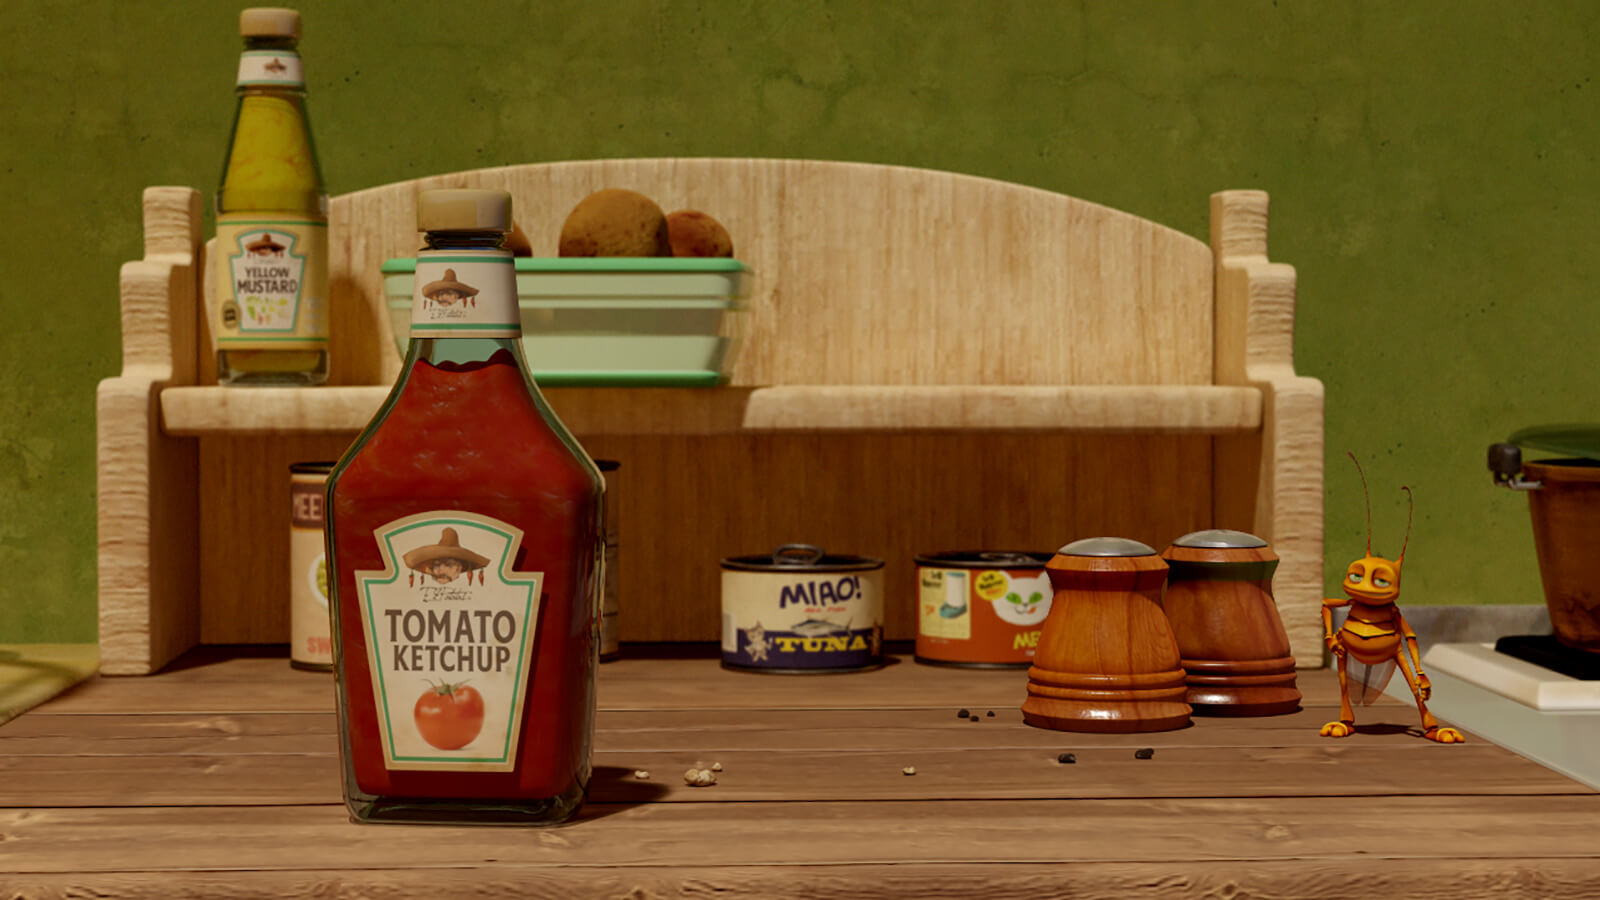 A CG-animated roach stands on a wooden countertop next to bottles of condiments, salt & pepper shakers, and canned goods.